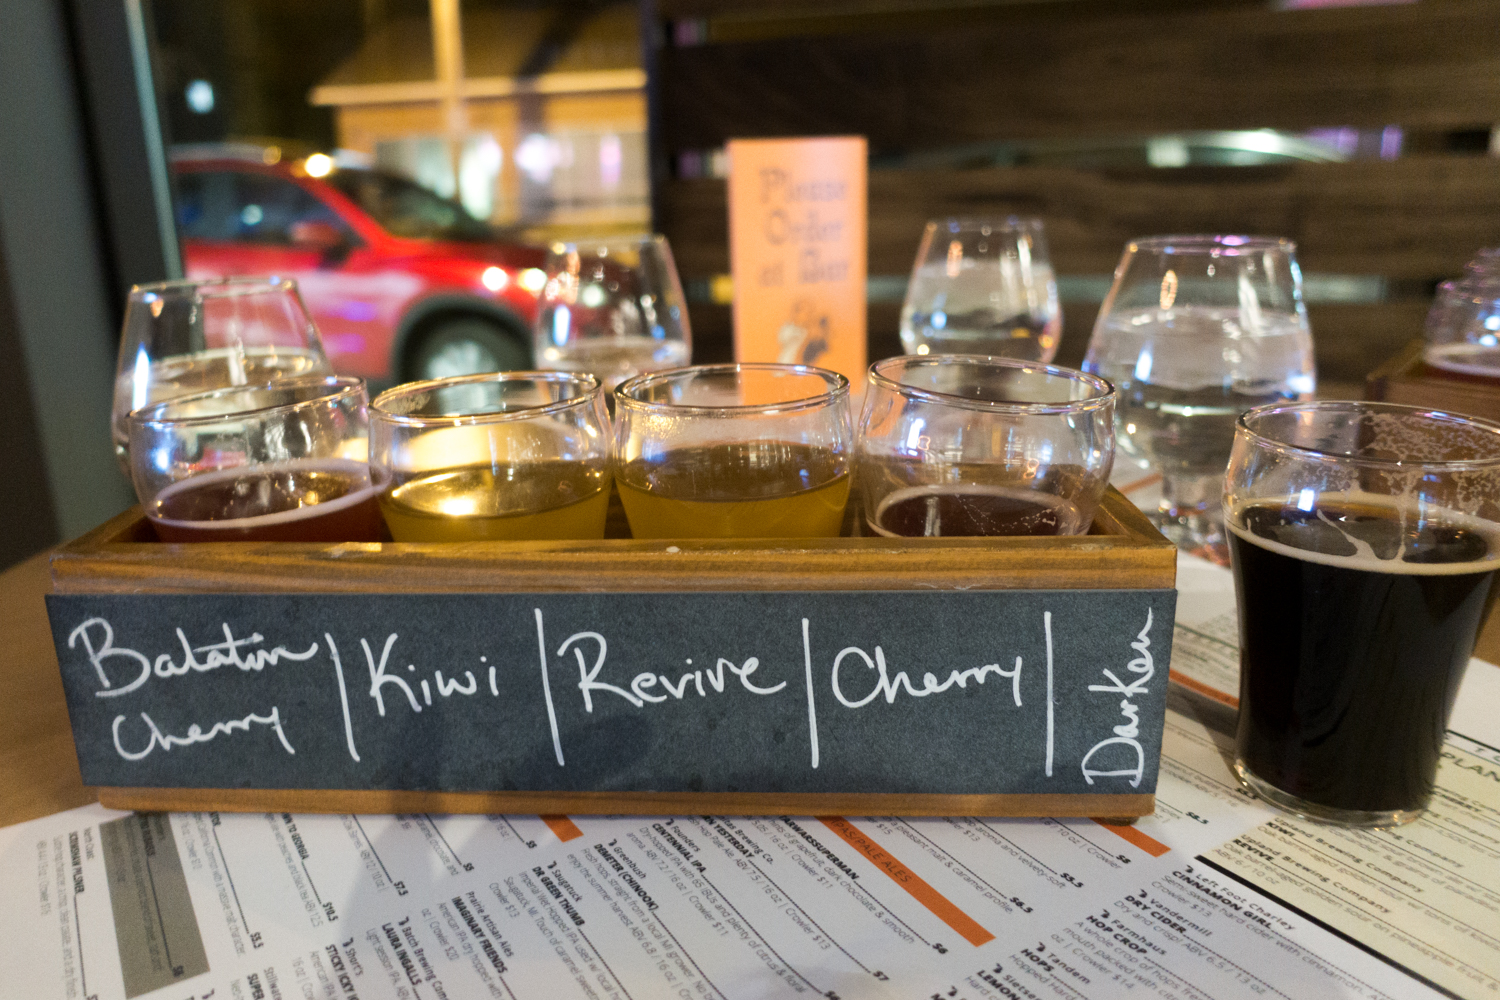 Sour Beer flight from Upland Brewing